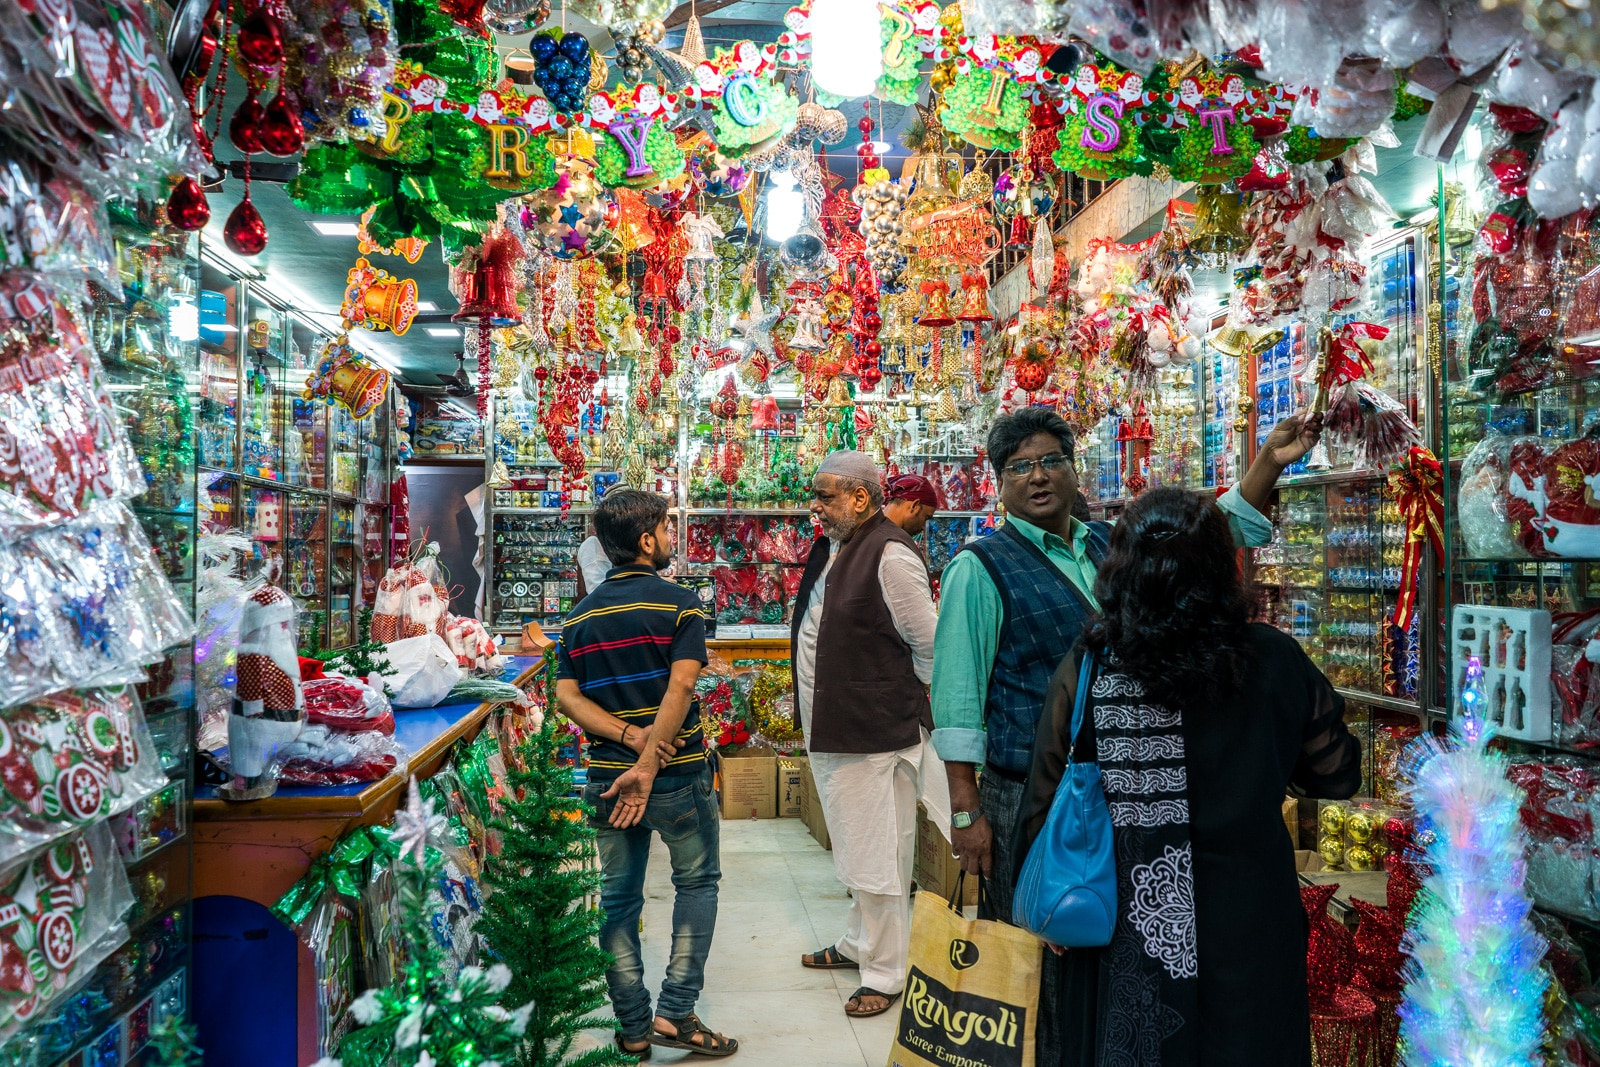 Celebrating Christmas in Kolkata, India - Muslim man selling Christmas decorations on Mirza Ghalib street - Lost With Purpose travel blog